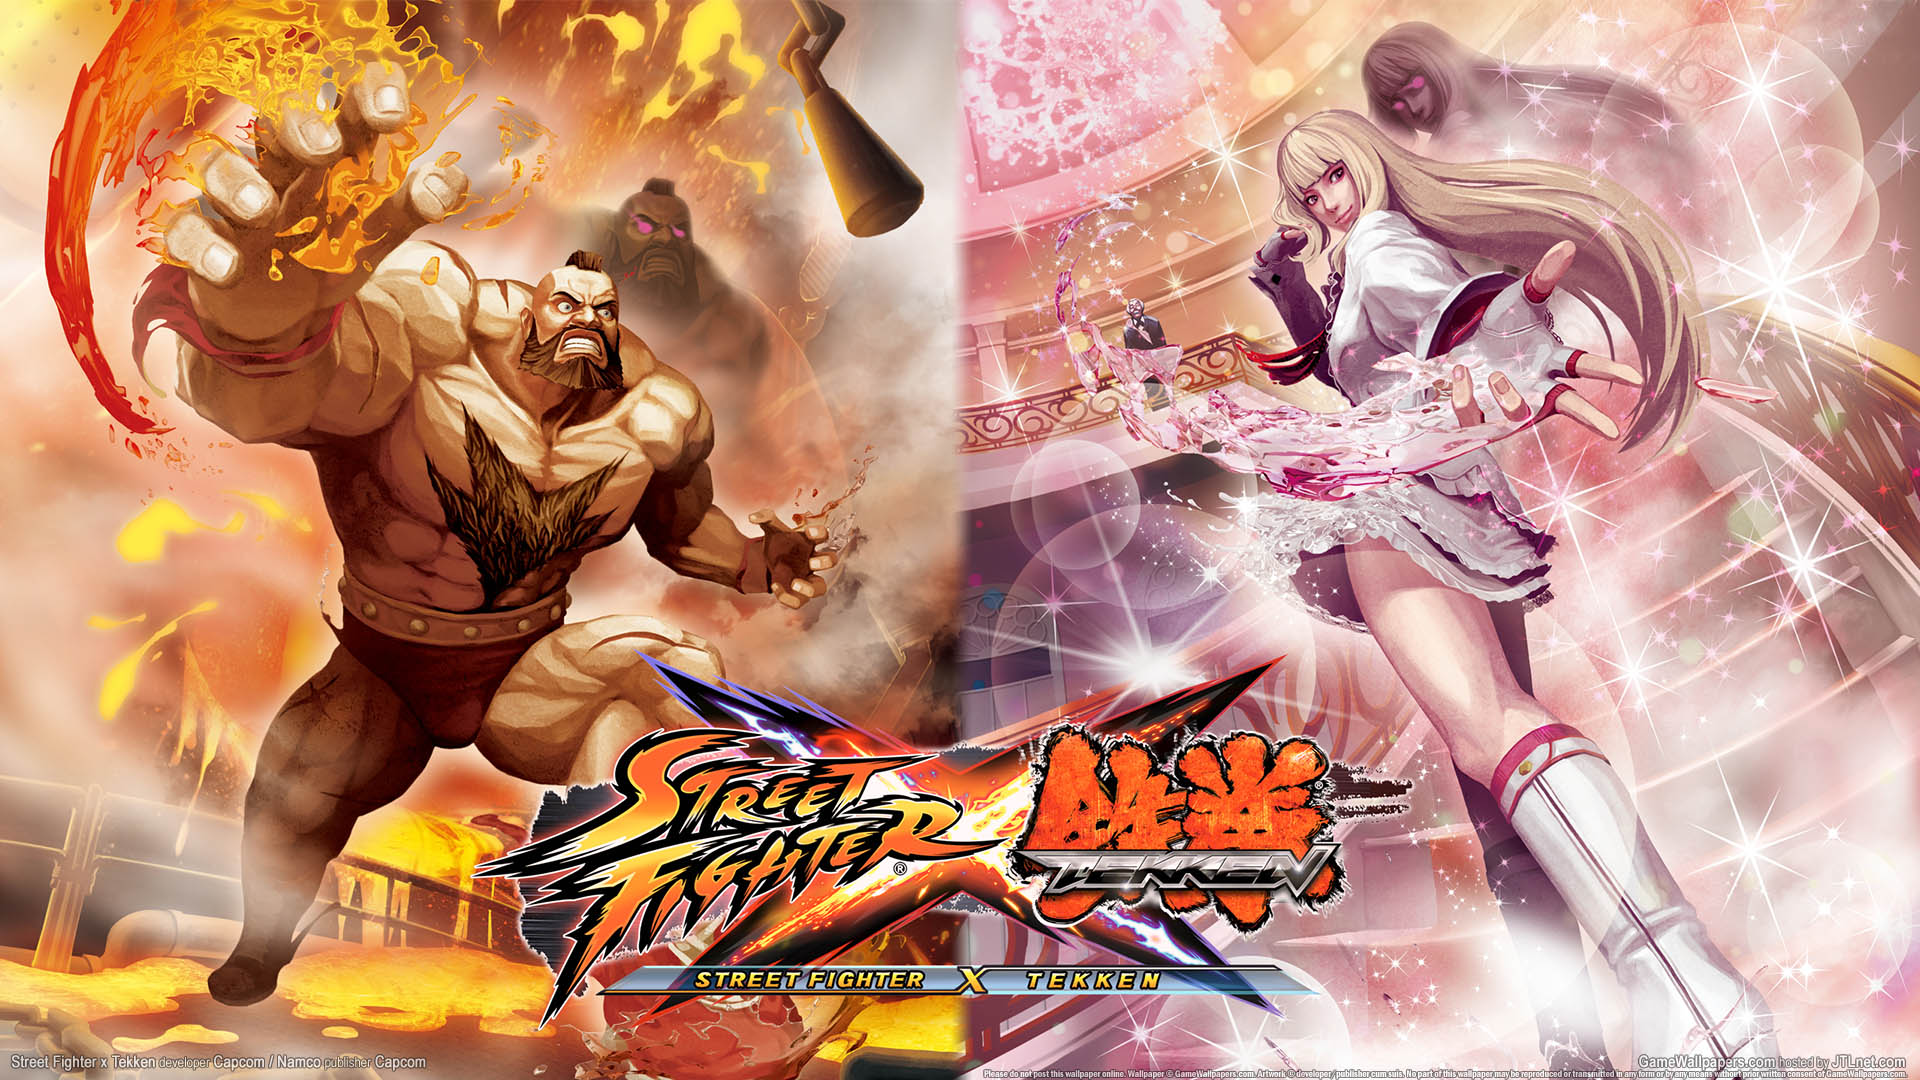 Street Fighter X Tekken Wallpaper 02 1920x1080